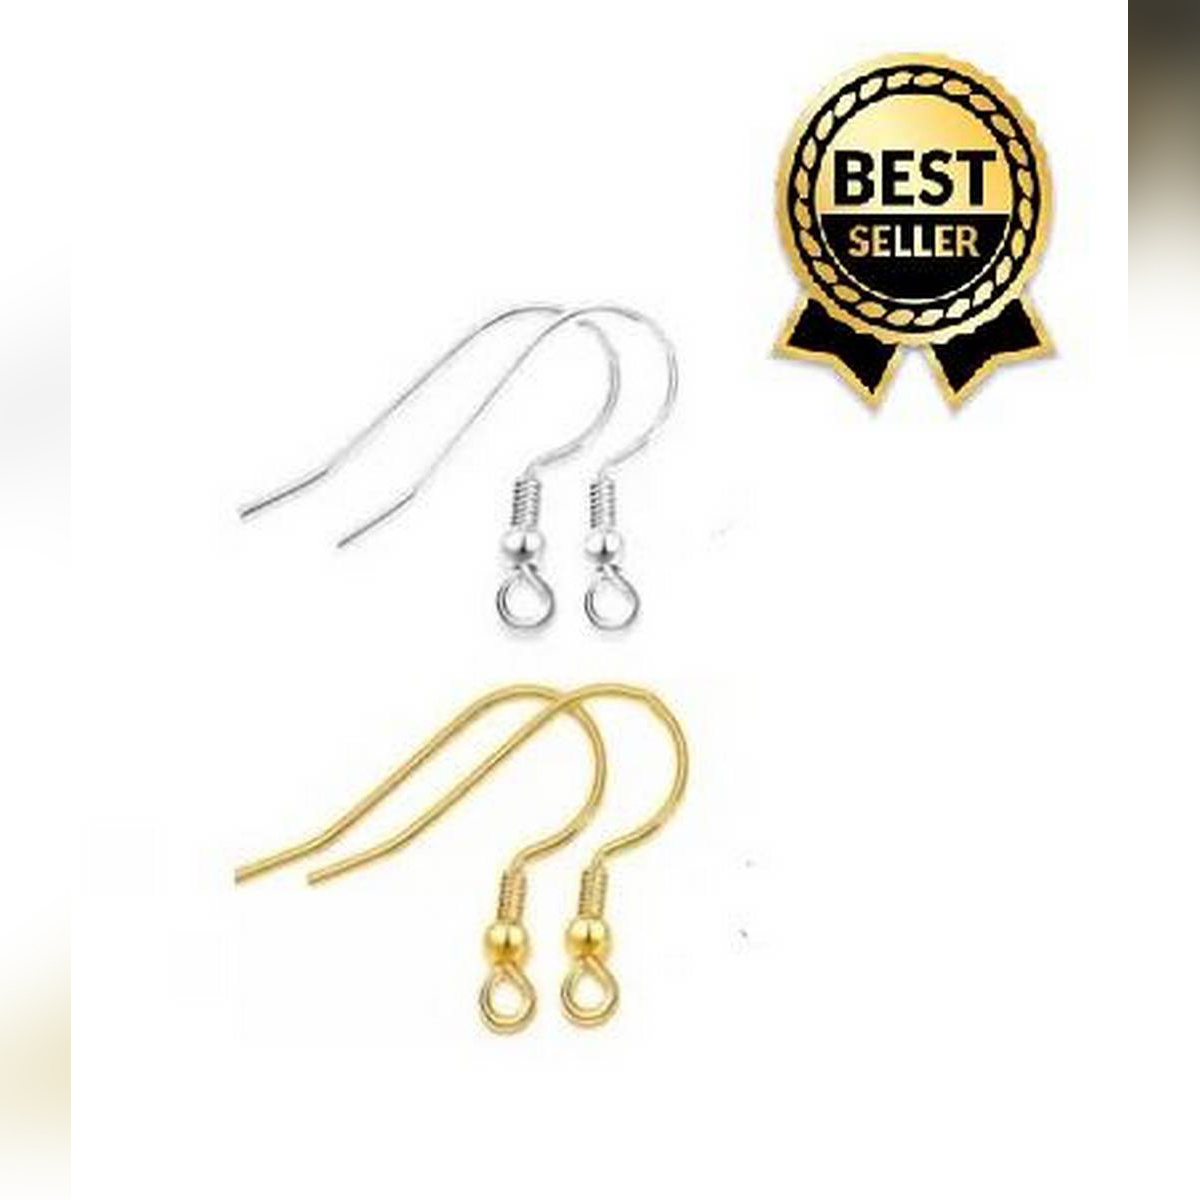 20 Pairs Of Golden & Silver Earrings Hooks Base For Jewellery Making